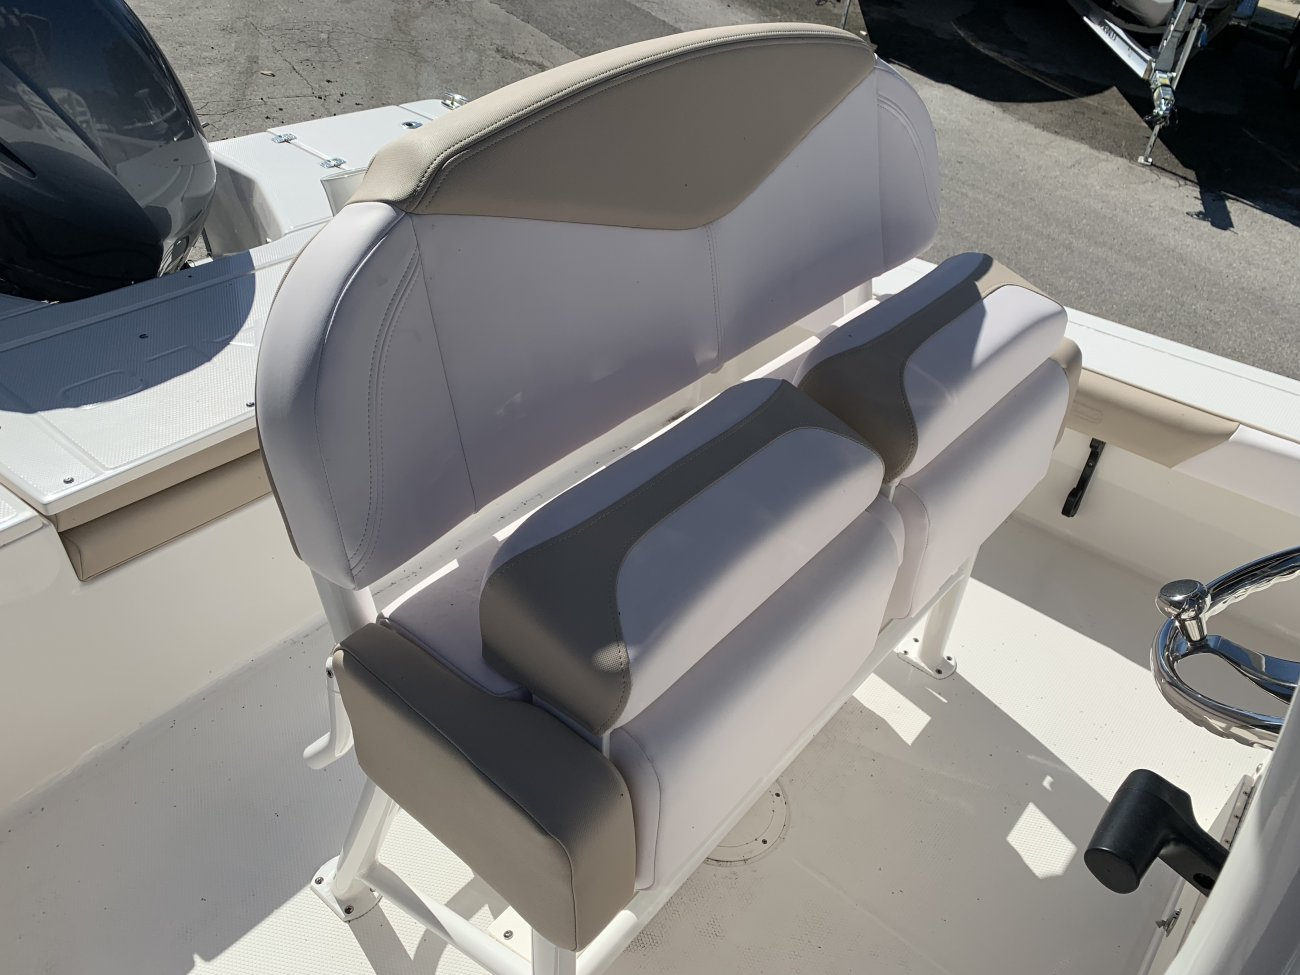 A 226 Cayman Bay Boat is a Power and could be classed as a Bass Boat, Bay Boat, Center Console, Fish and Ski, Freshwater Fishing, High Performance, Saltwater Fishing, Runabout,  or, just an overall Great Boat!